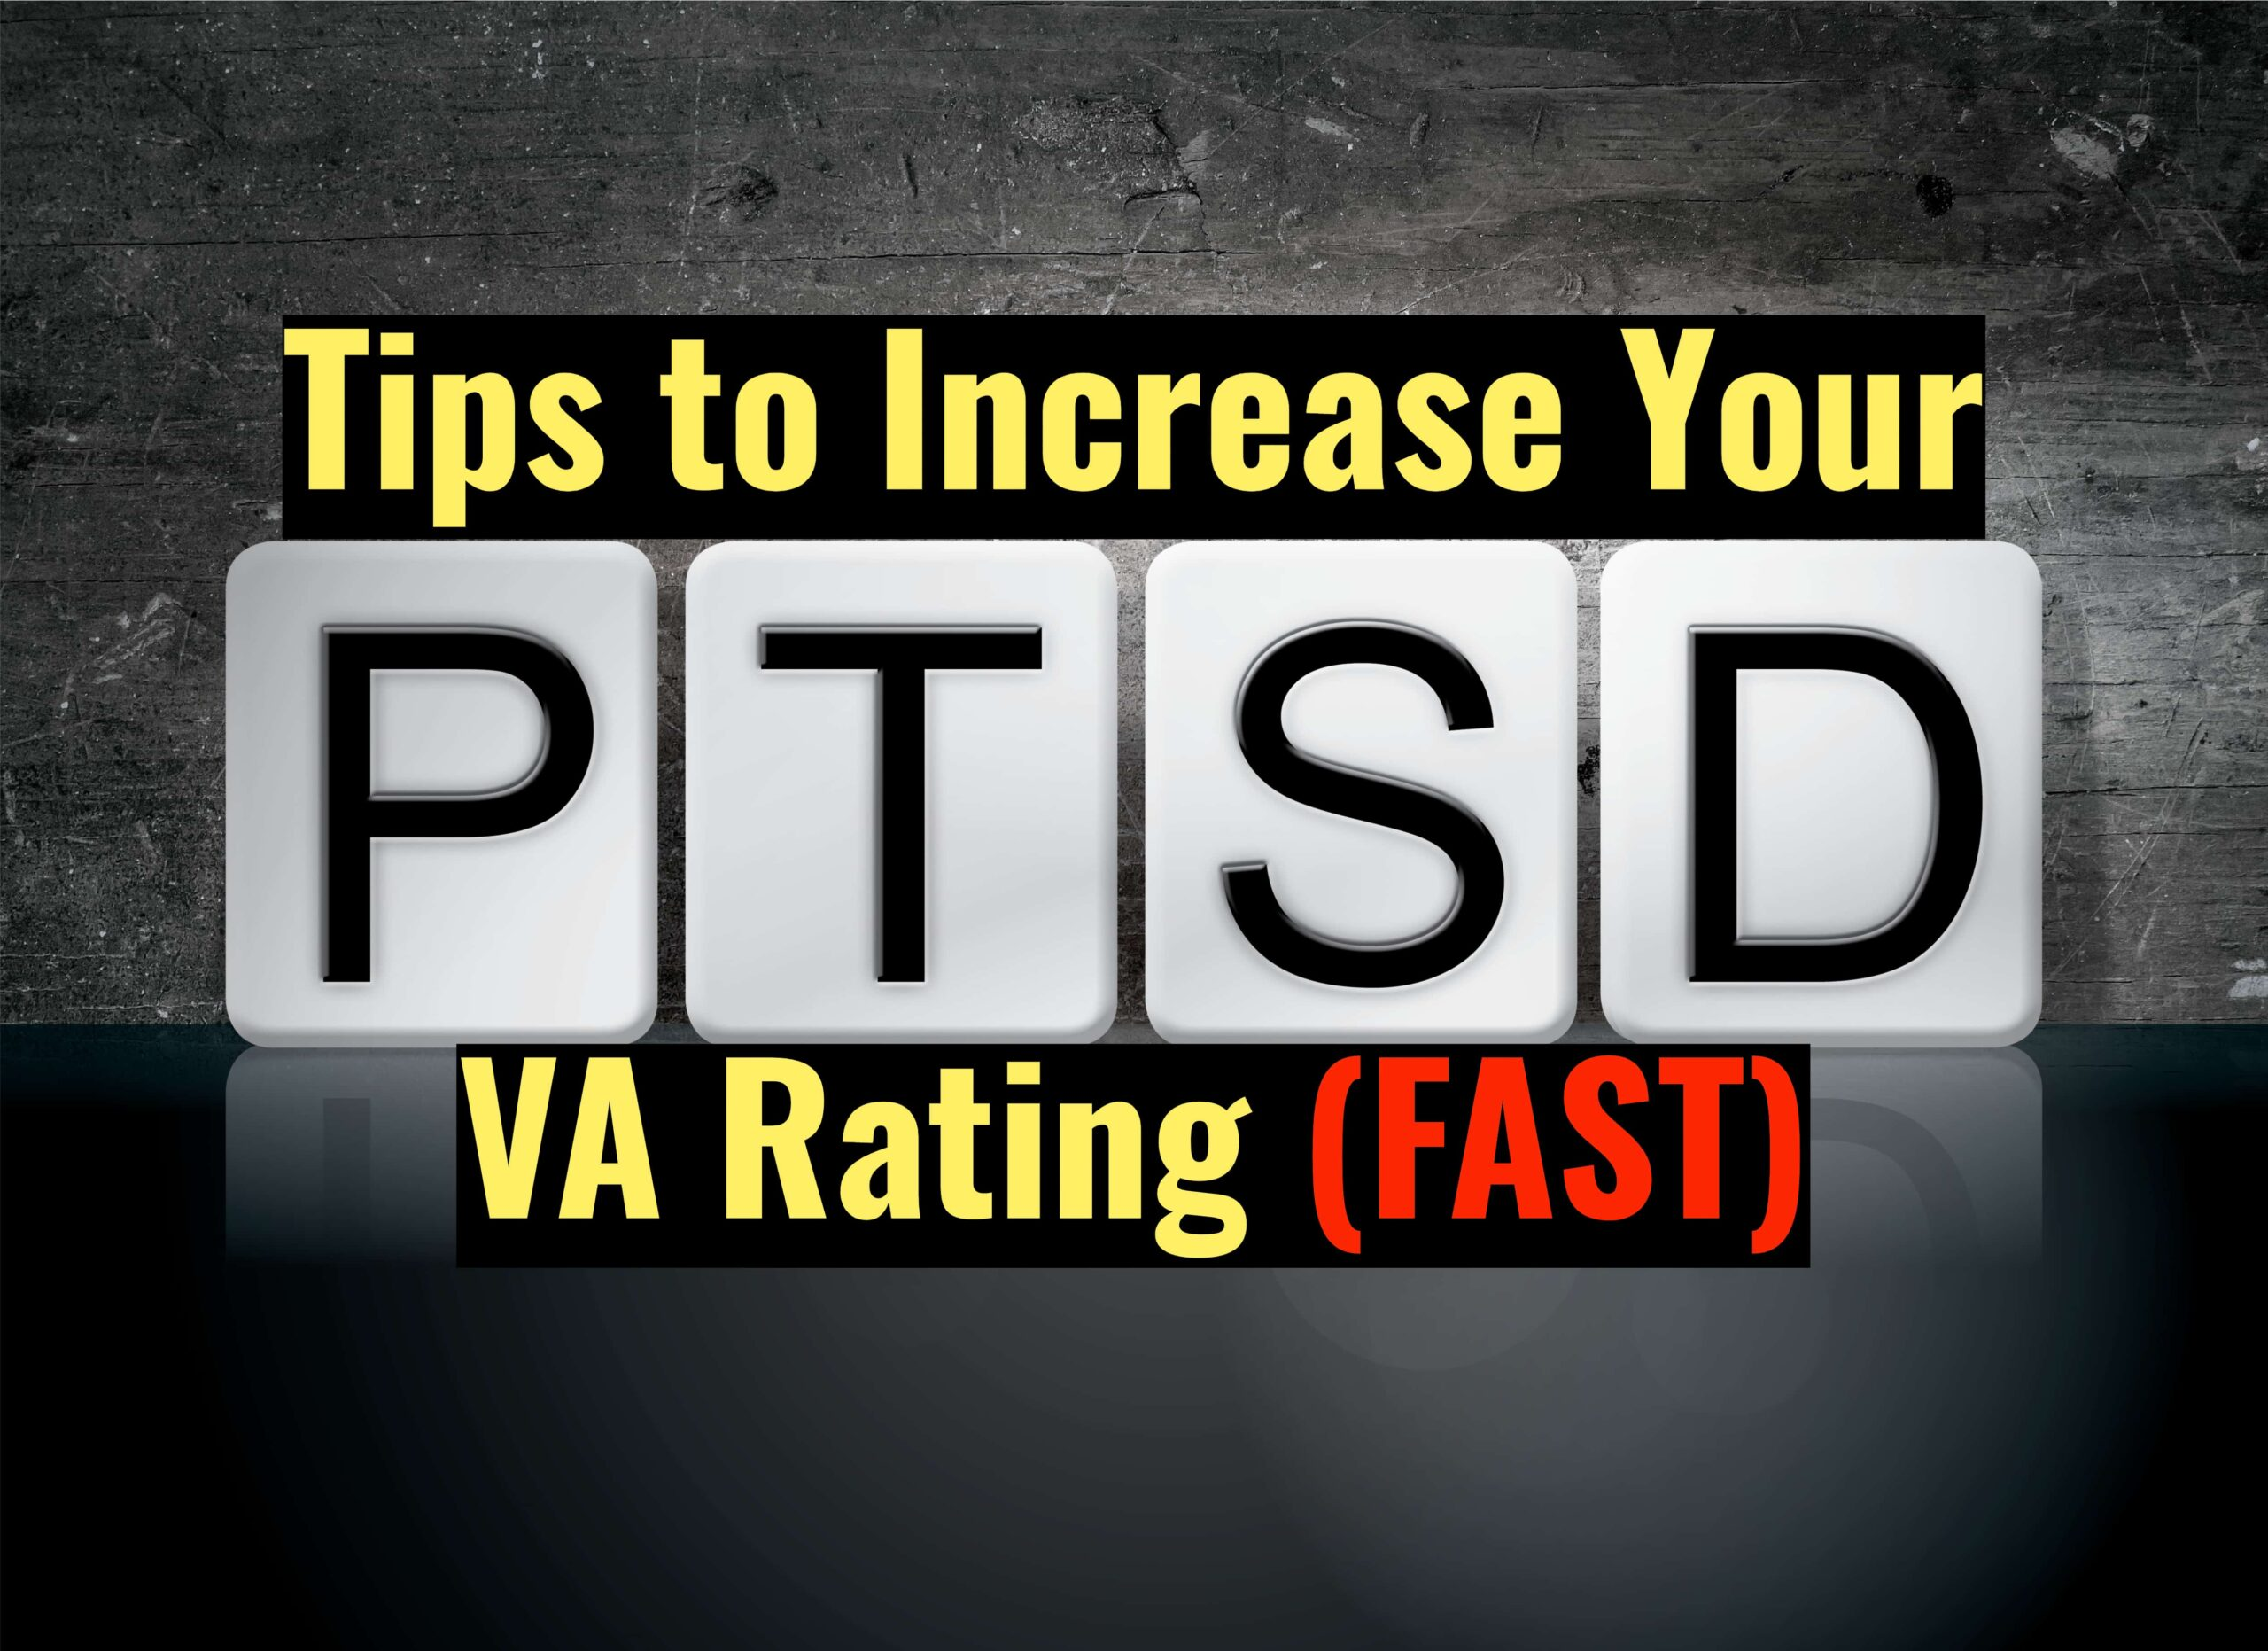 How to Increase VA Disability Rating for PTSD